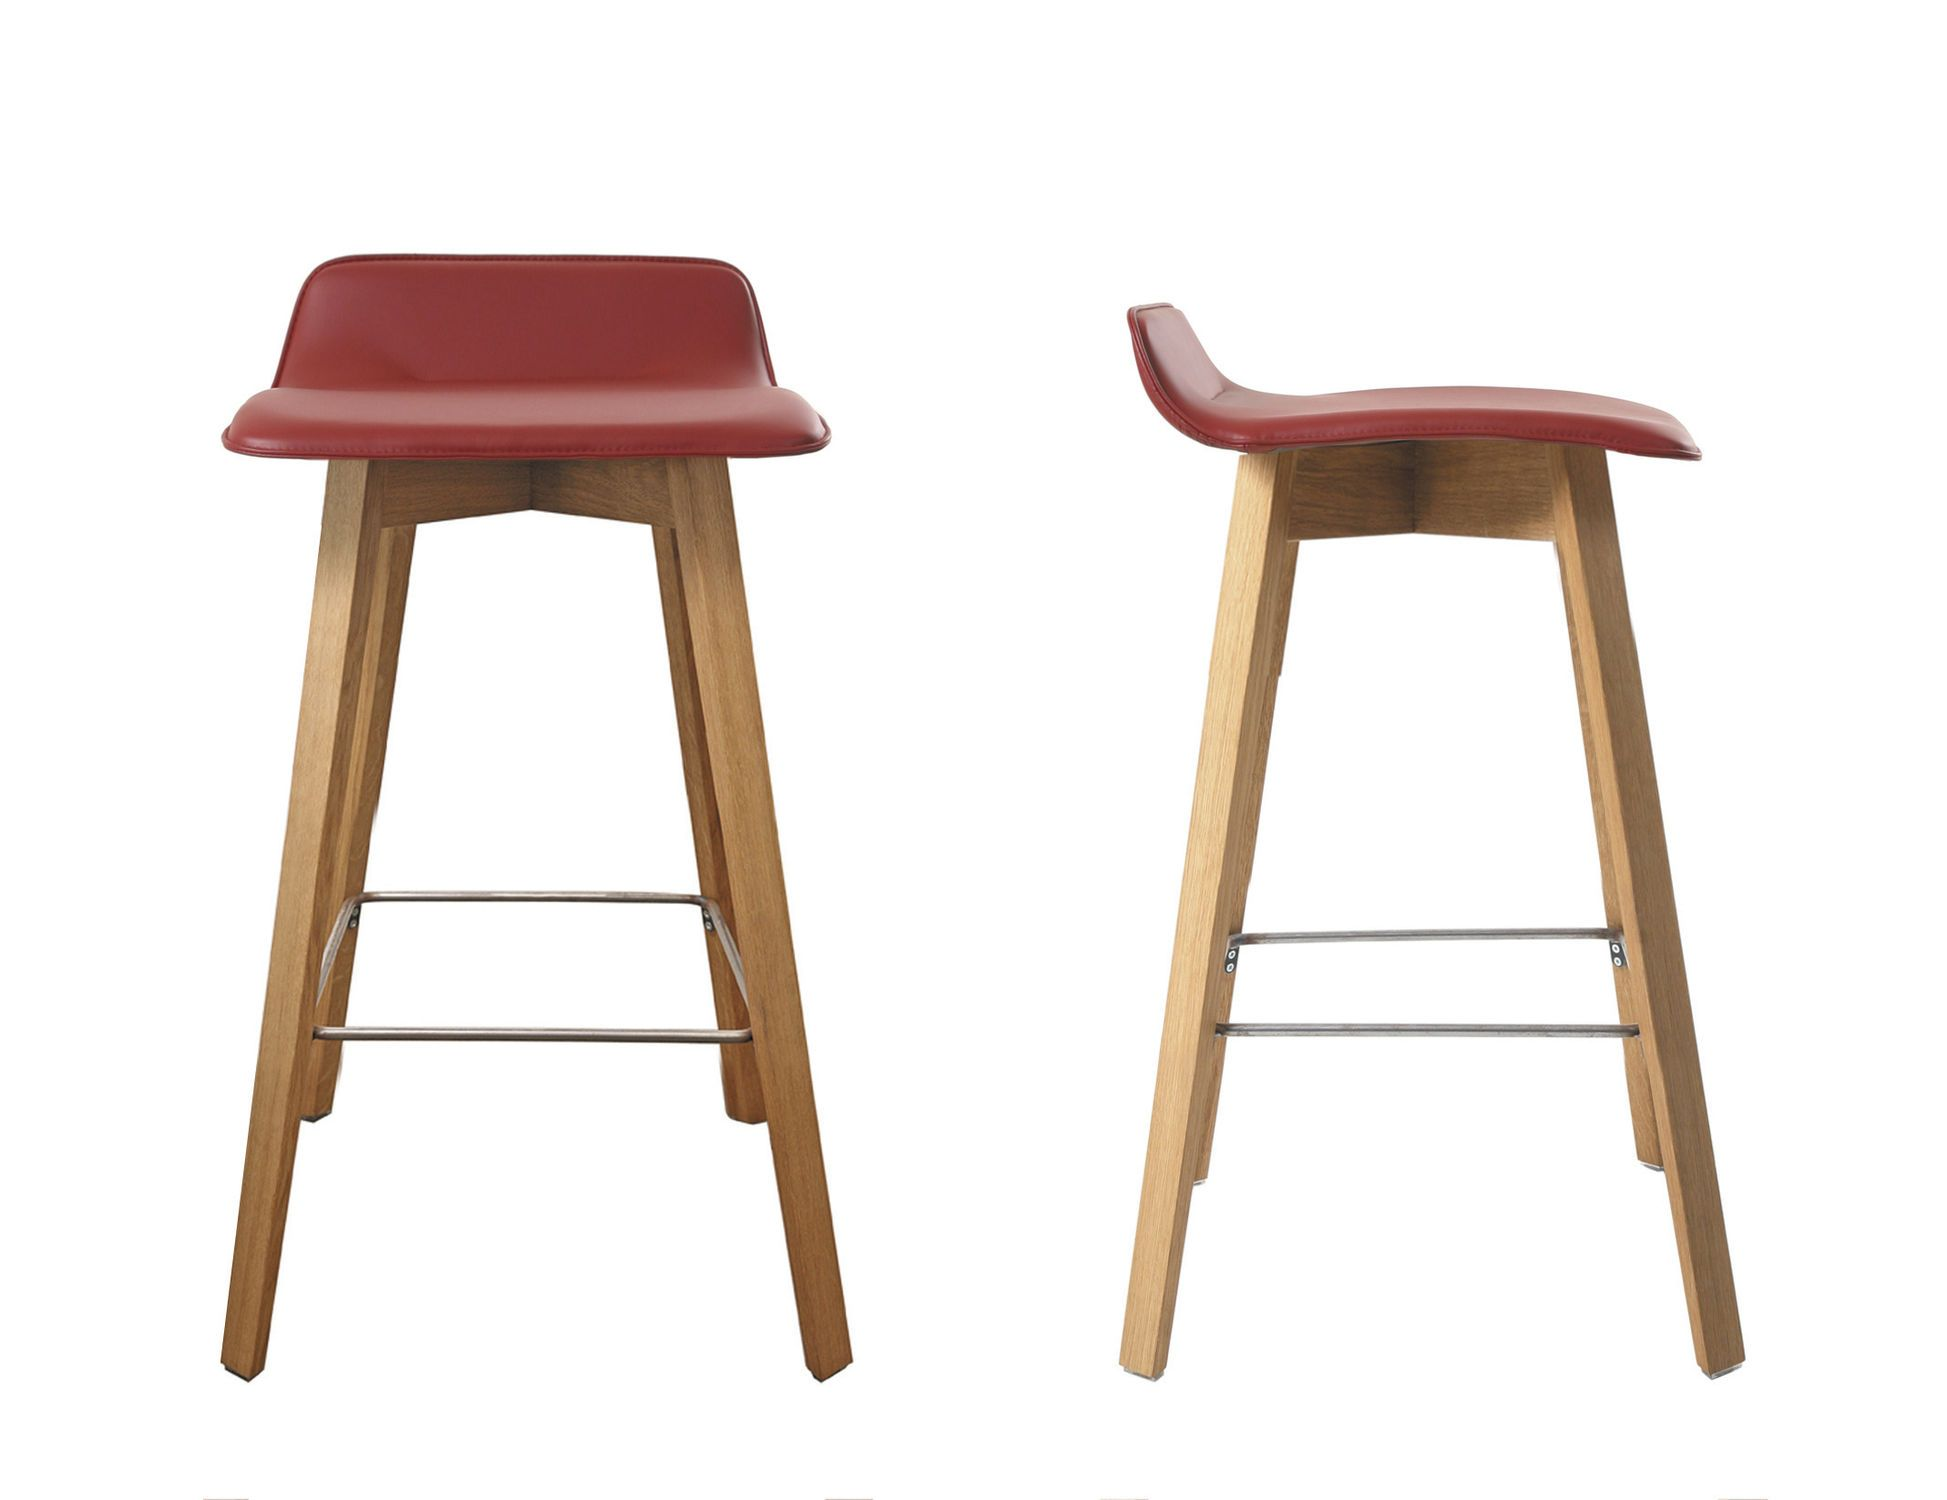 New Tabouret Bar Stools with Backs